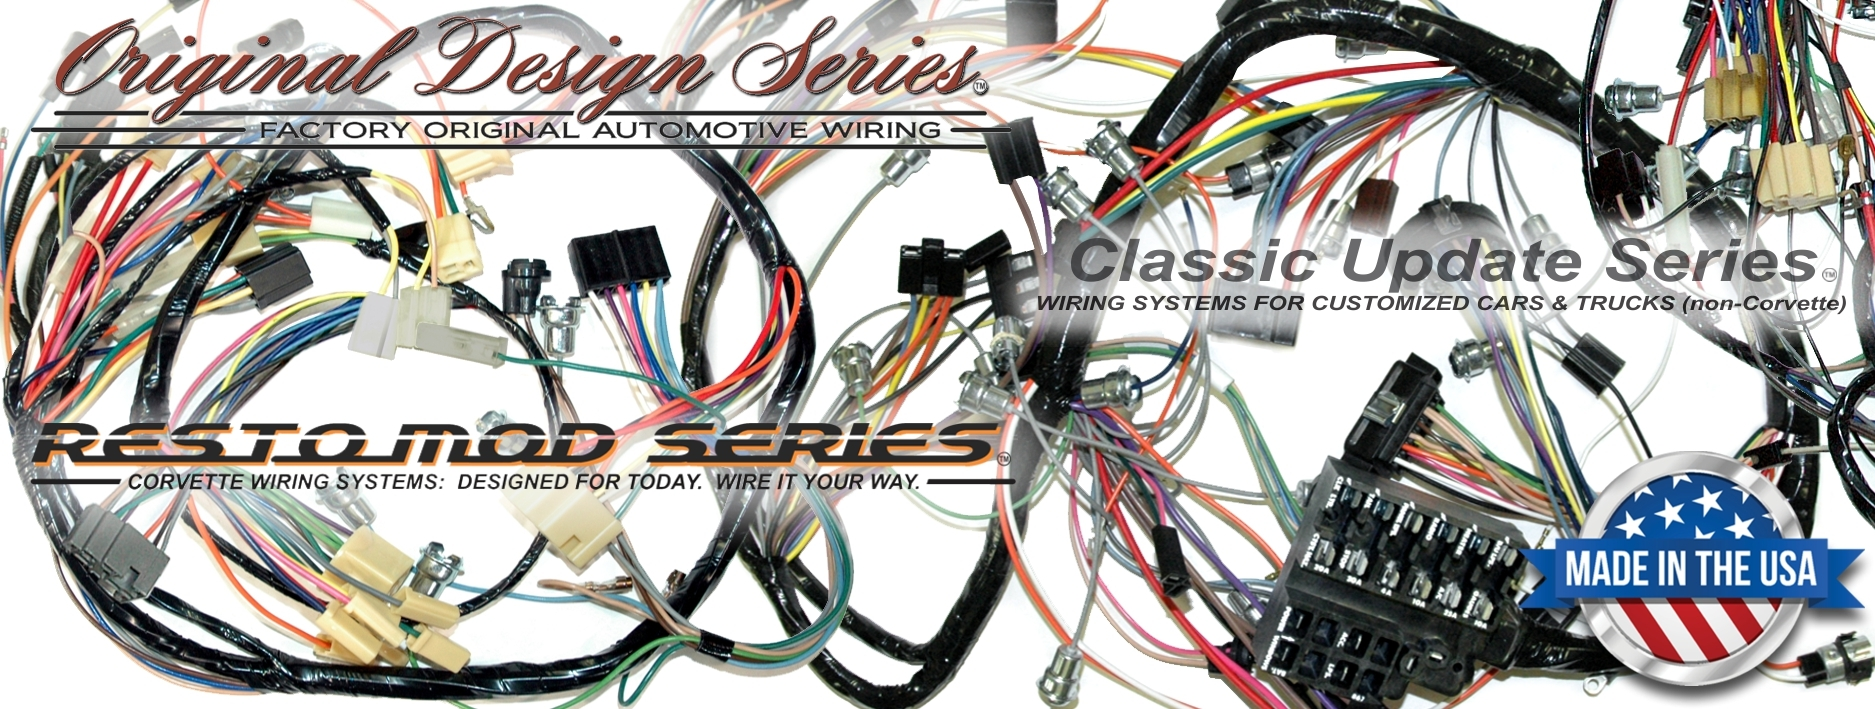 new header wiring_harnesses exact oem reproduction wiring harnesses and restomod wiring c3 corvette wiring harness at aneh.co